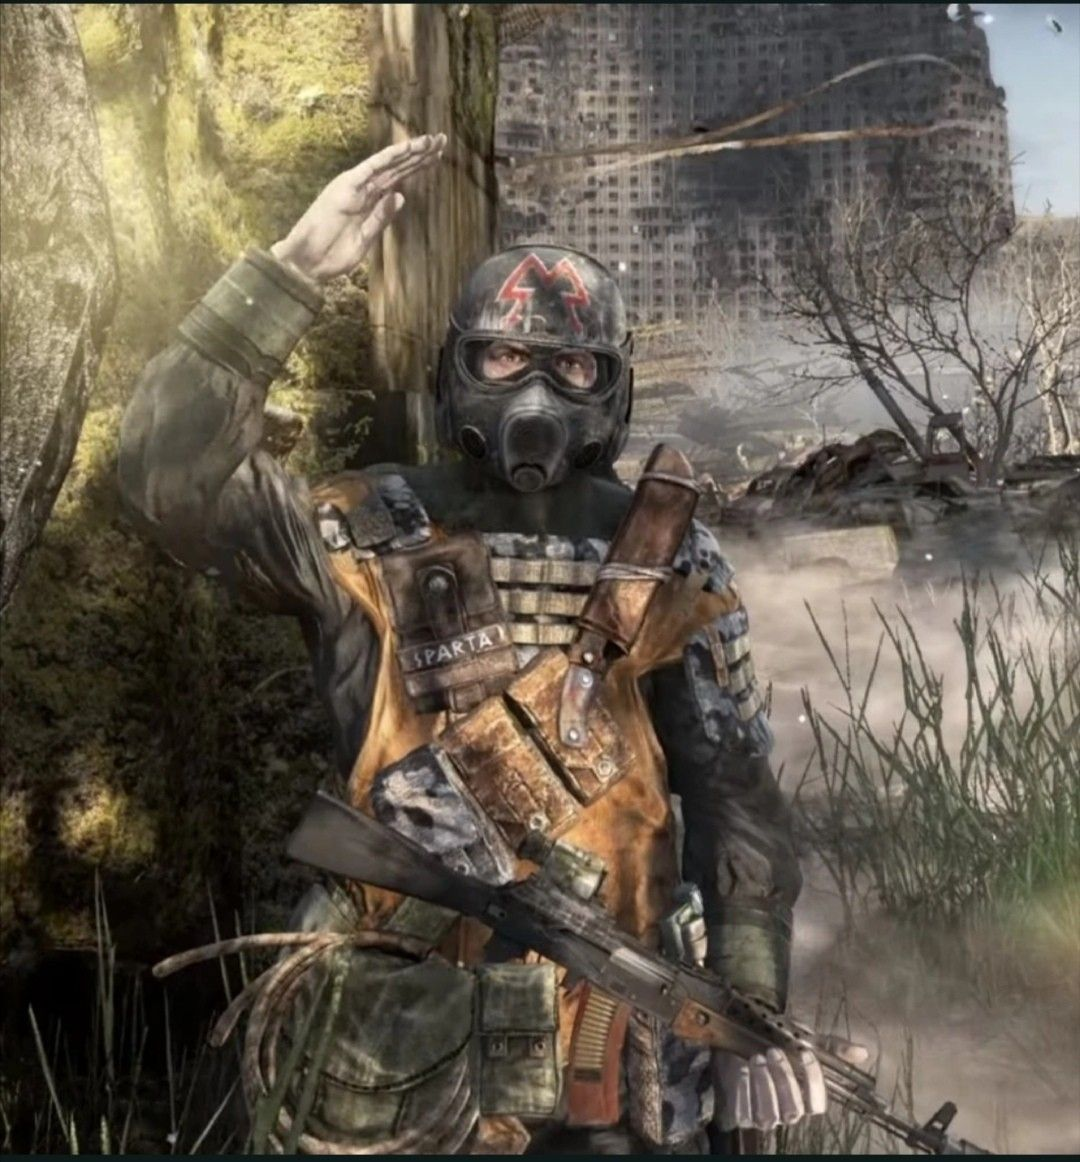 Pin by Natka on Постапокалипсис in 2020 Metro last light